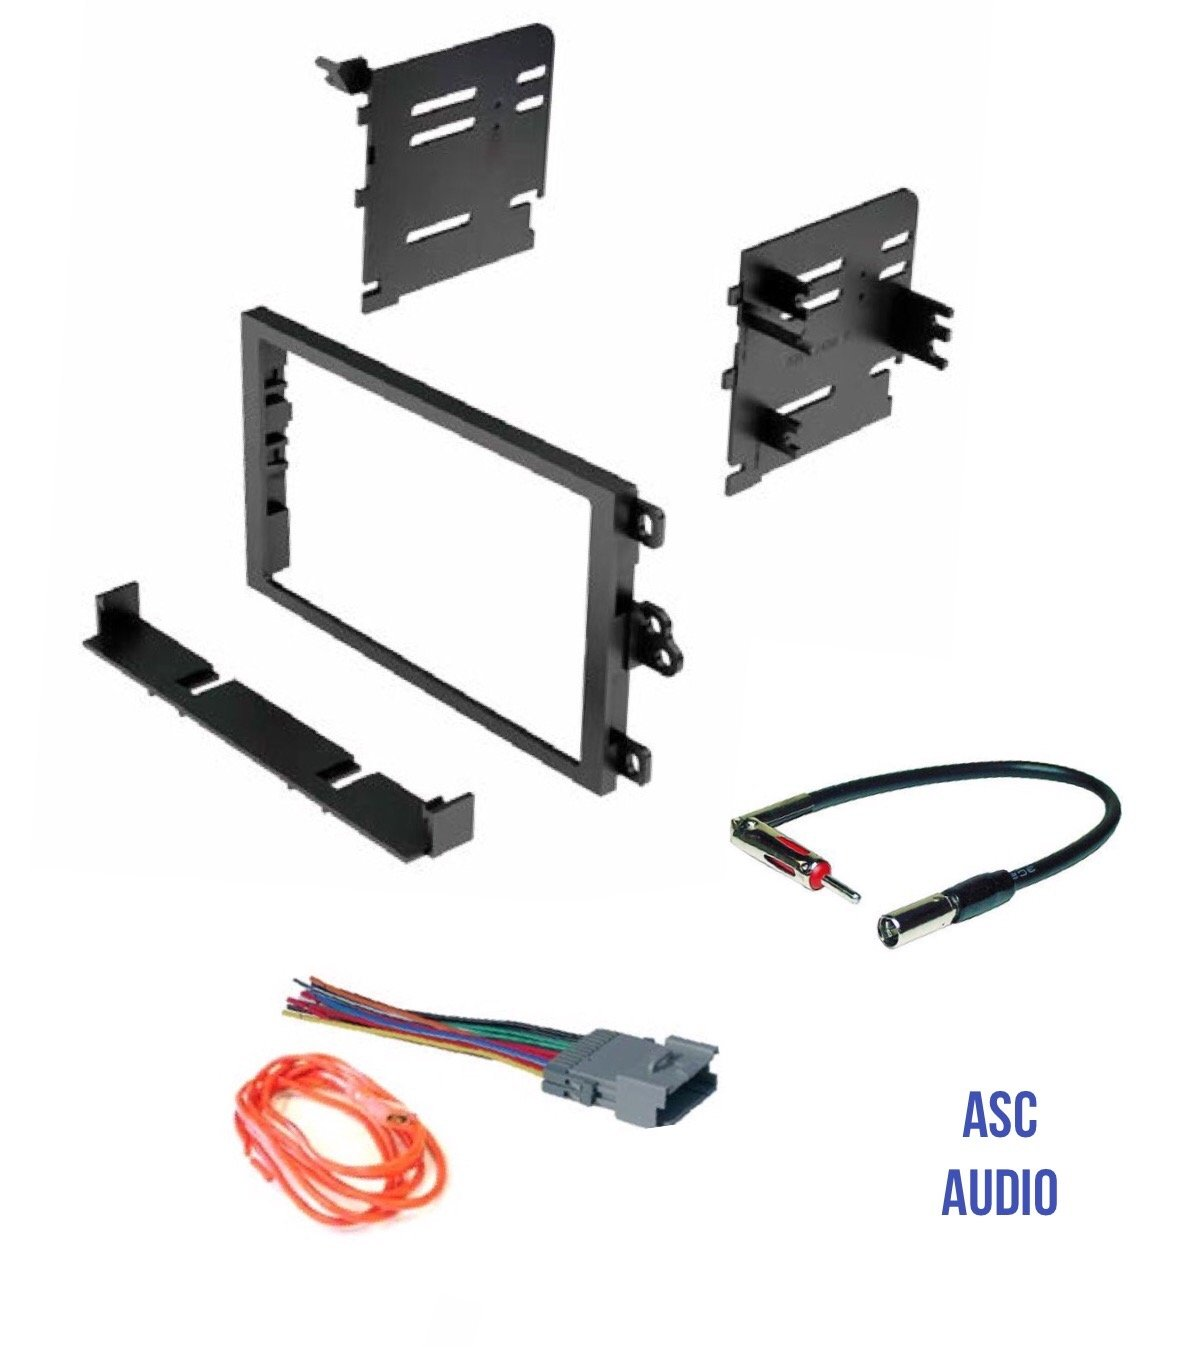 Asc Audio Car Stereo Dash Kit Wire Harness And Antenna Gmc Envoy Radio Wiring Adapter To Add A Double Din For Some Buick Chevrolet Hummer Isuzu Oldsmobile